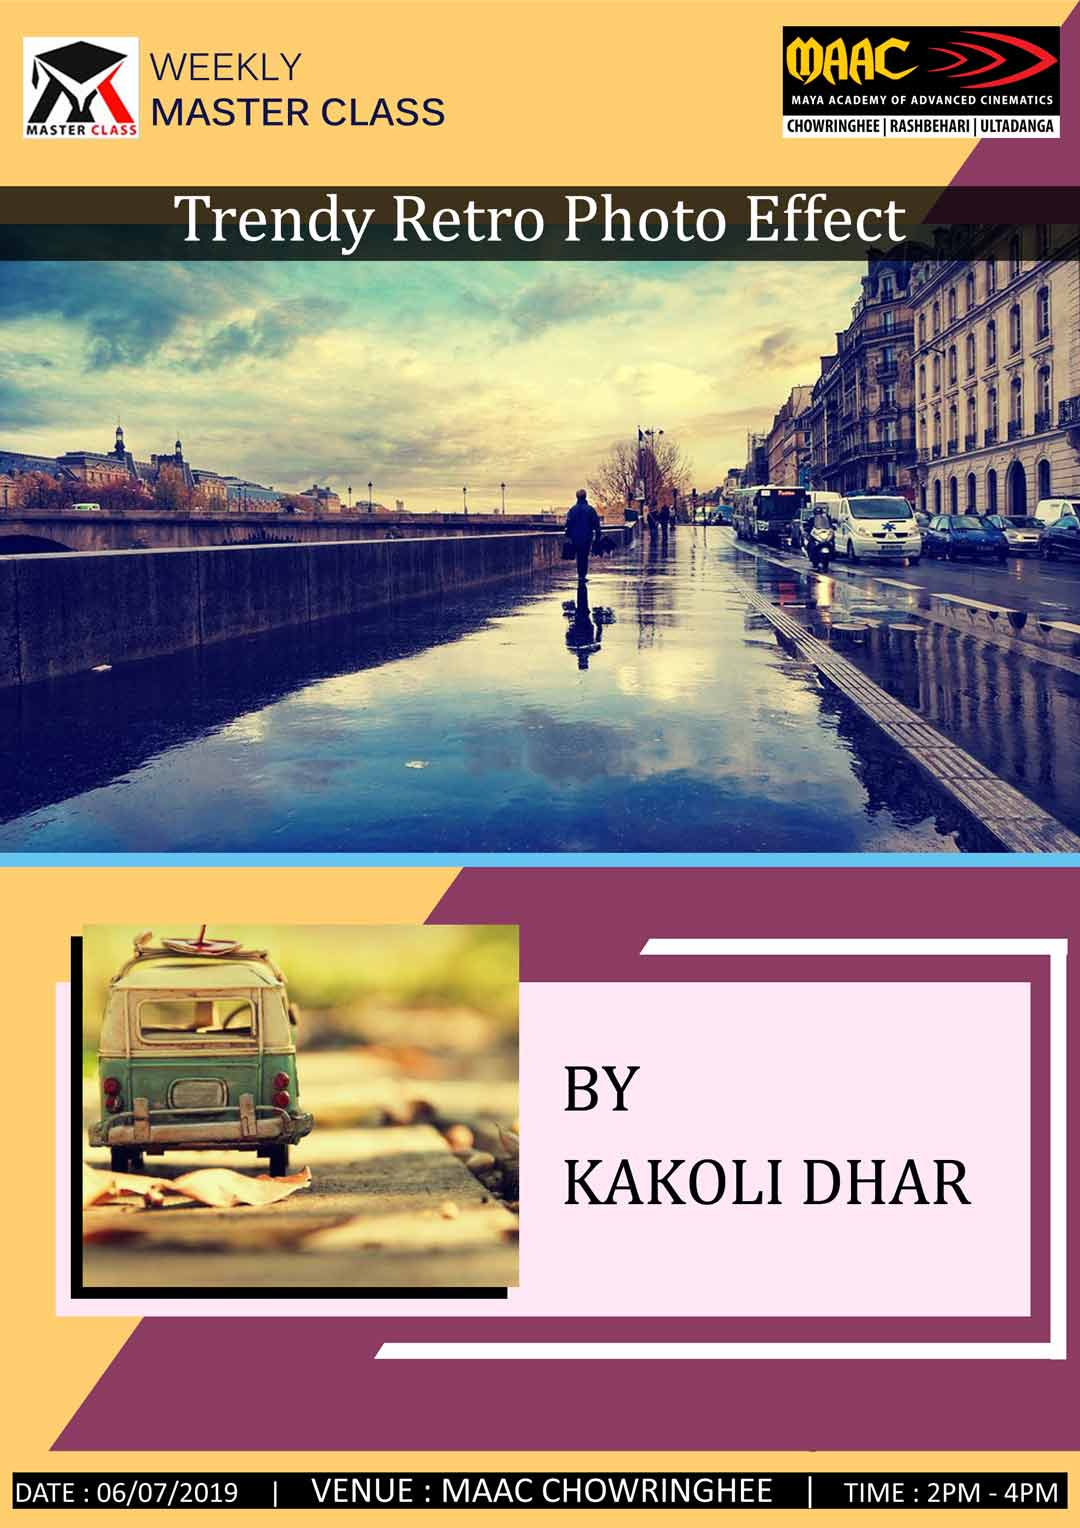 Weekly Master Class on Trendy Retro Photo Effect